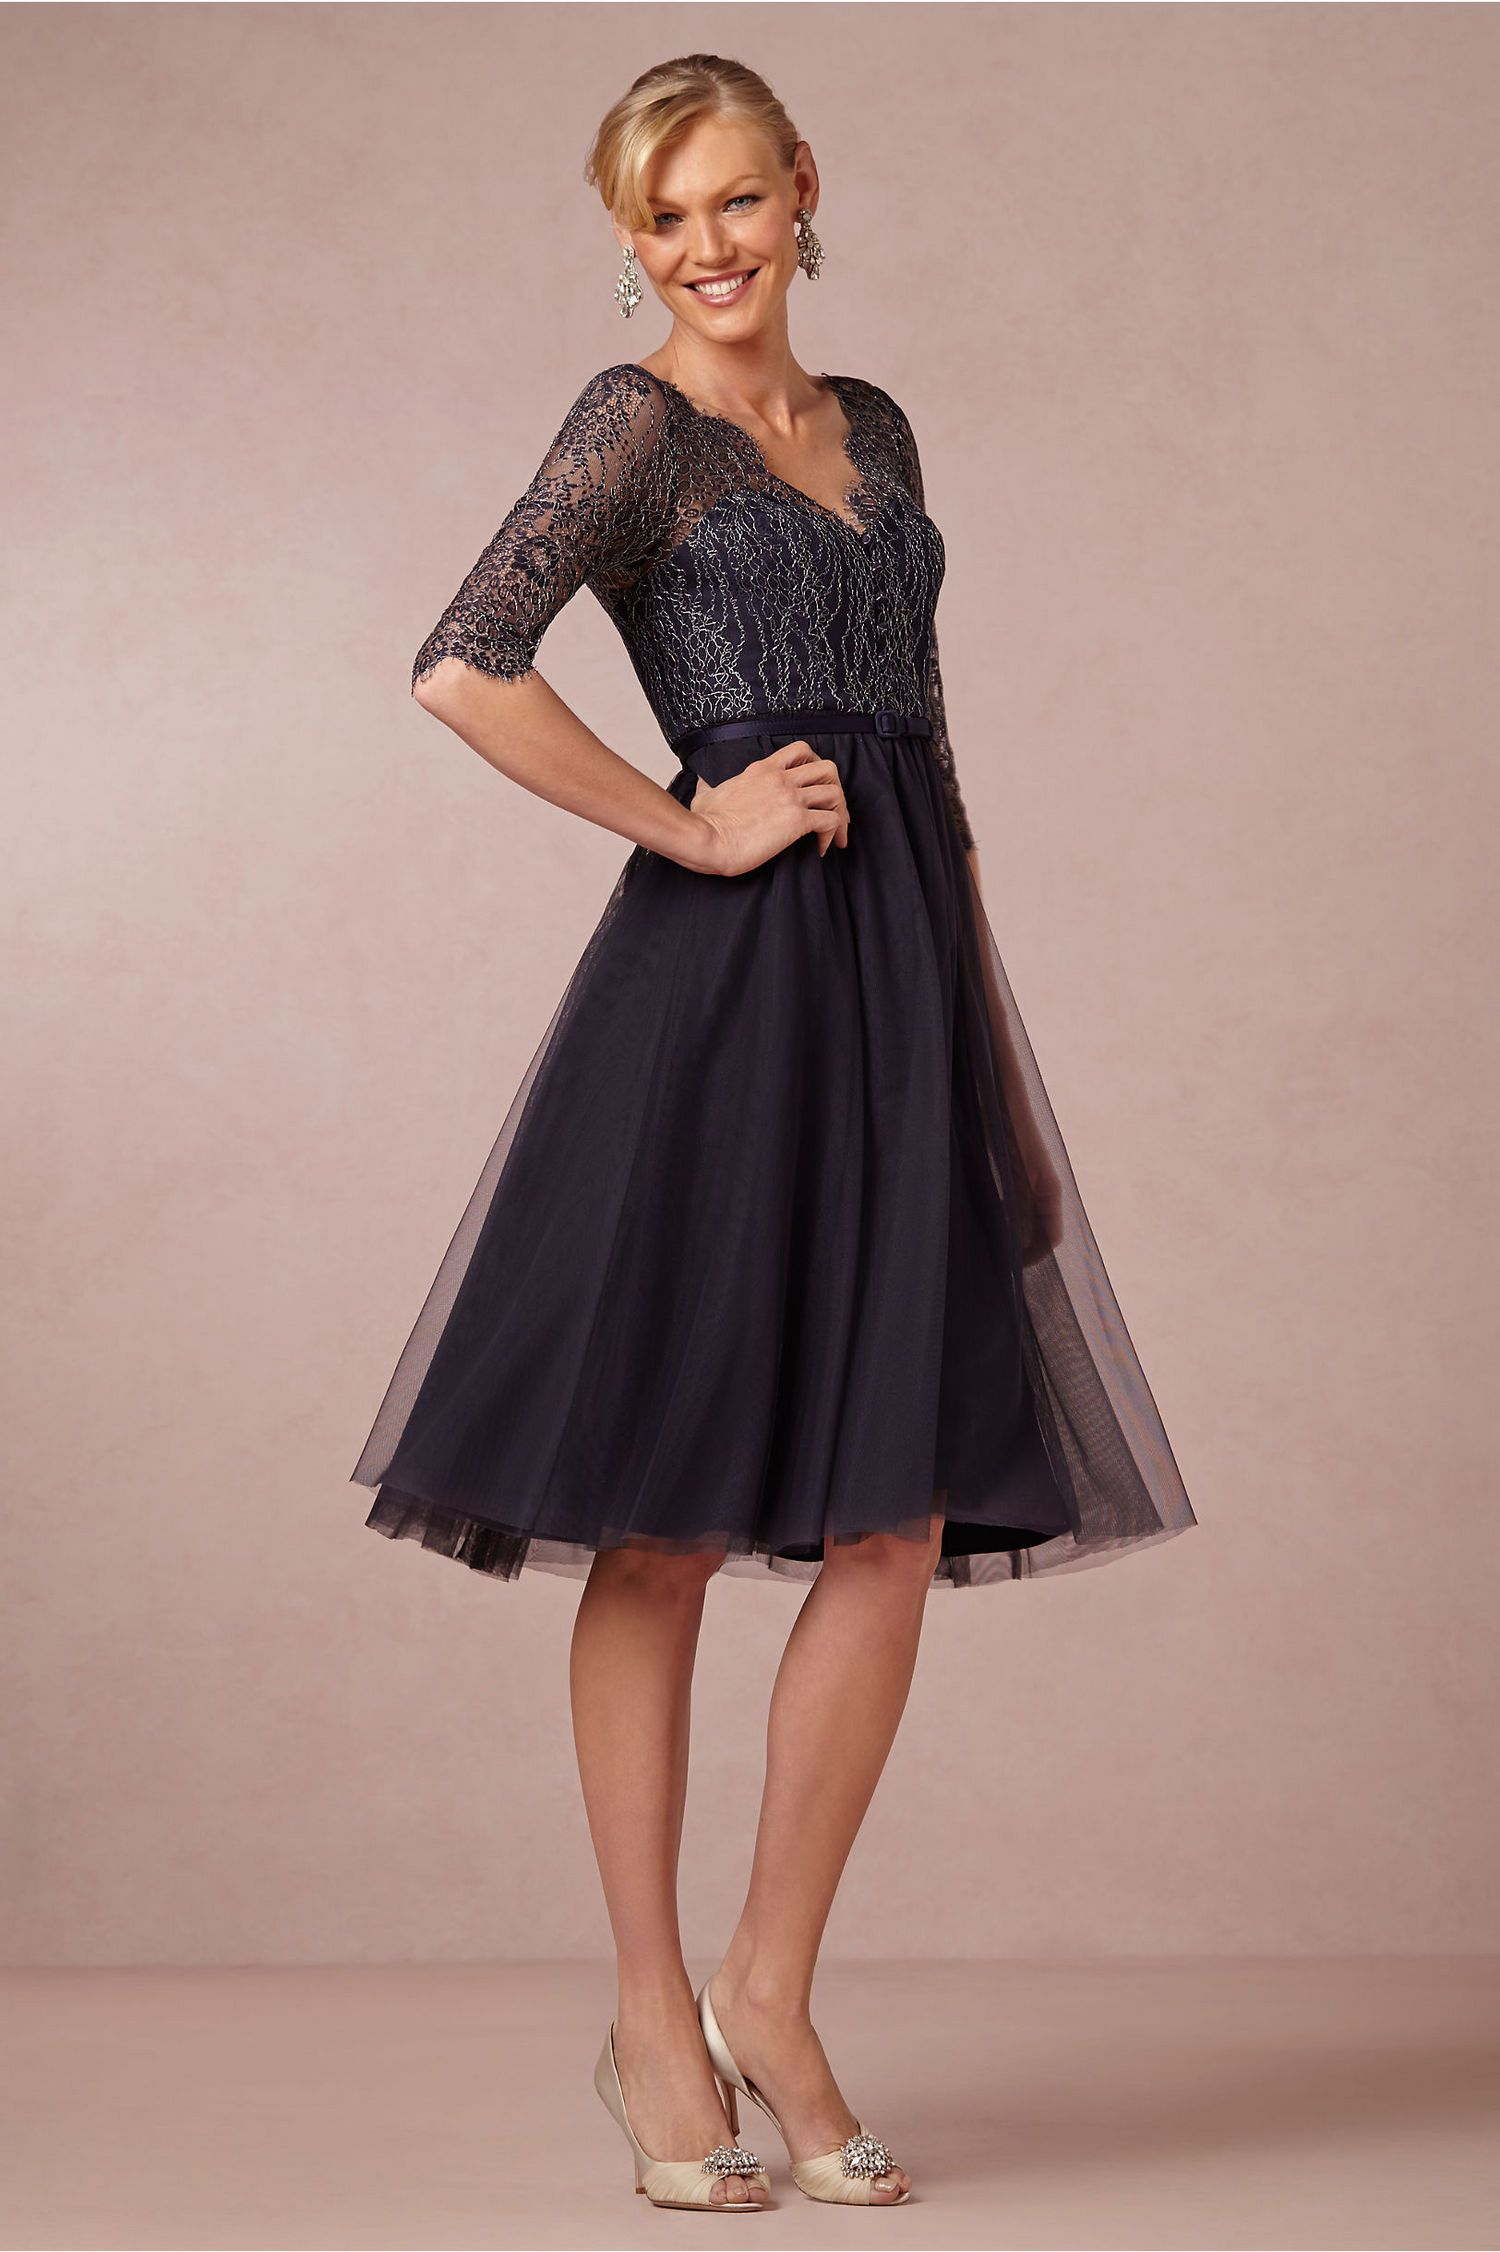 Baby It S Cold Outside Shift Dress: 7 Cute Dresses To Wear To A Winter Wedding, 'Cause, Baby